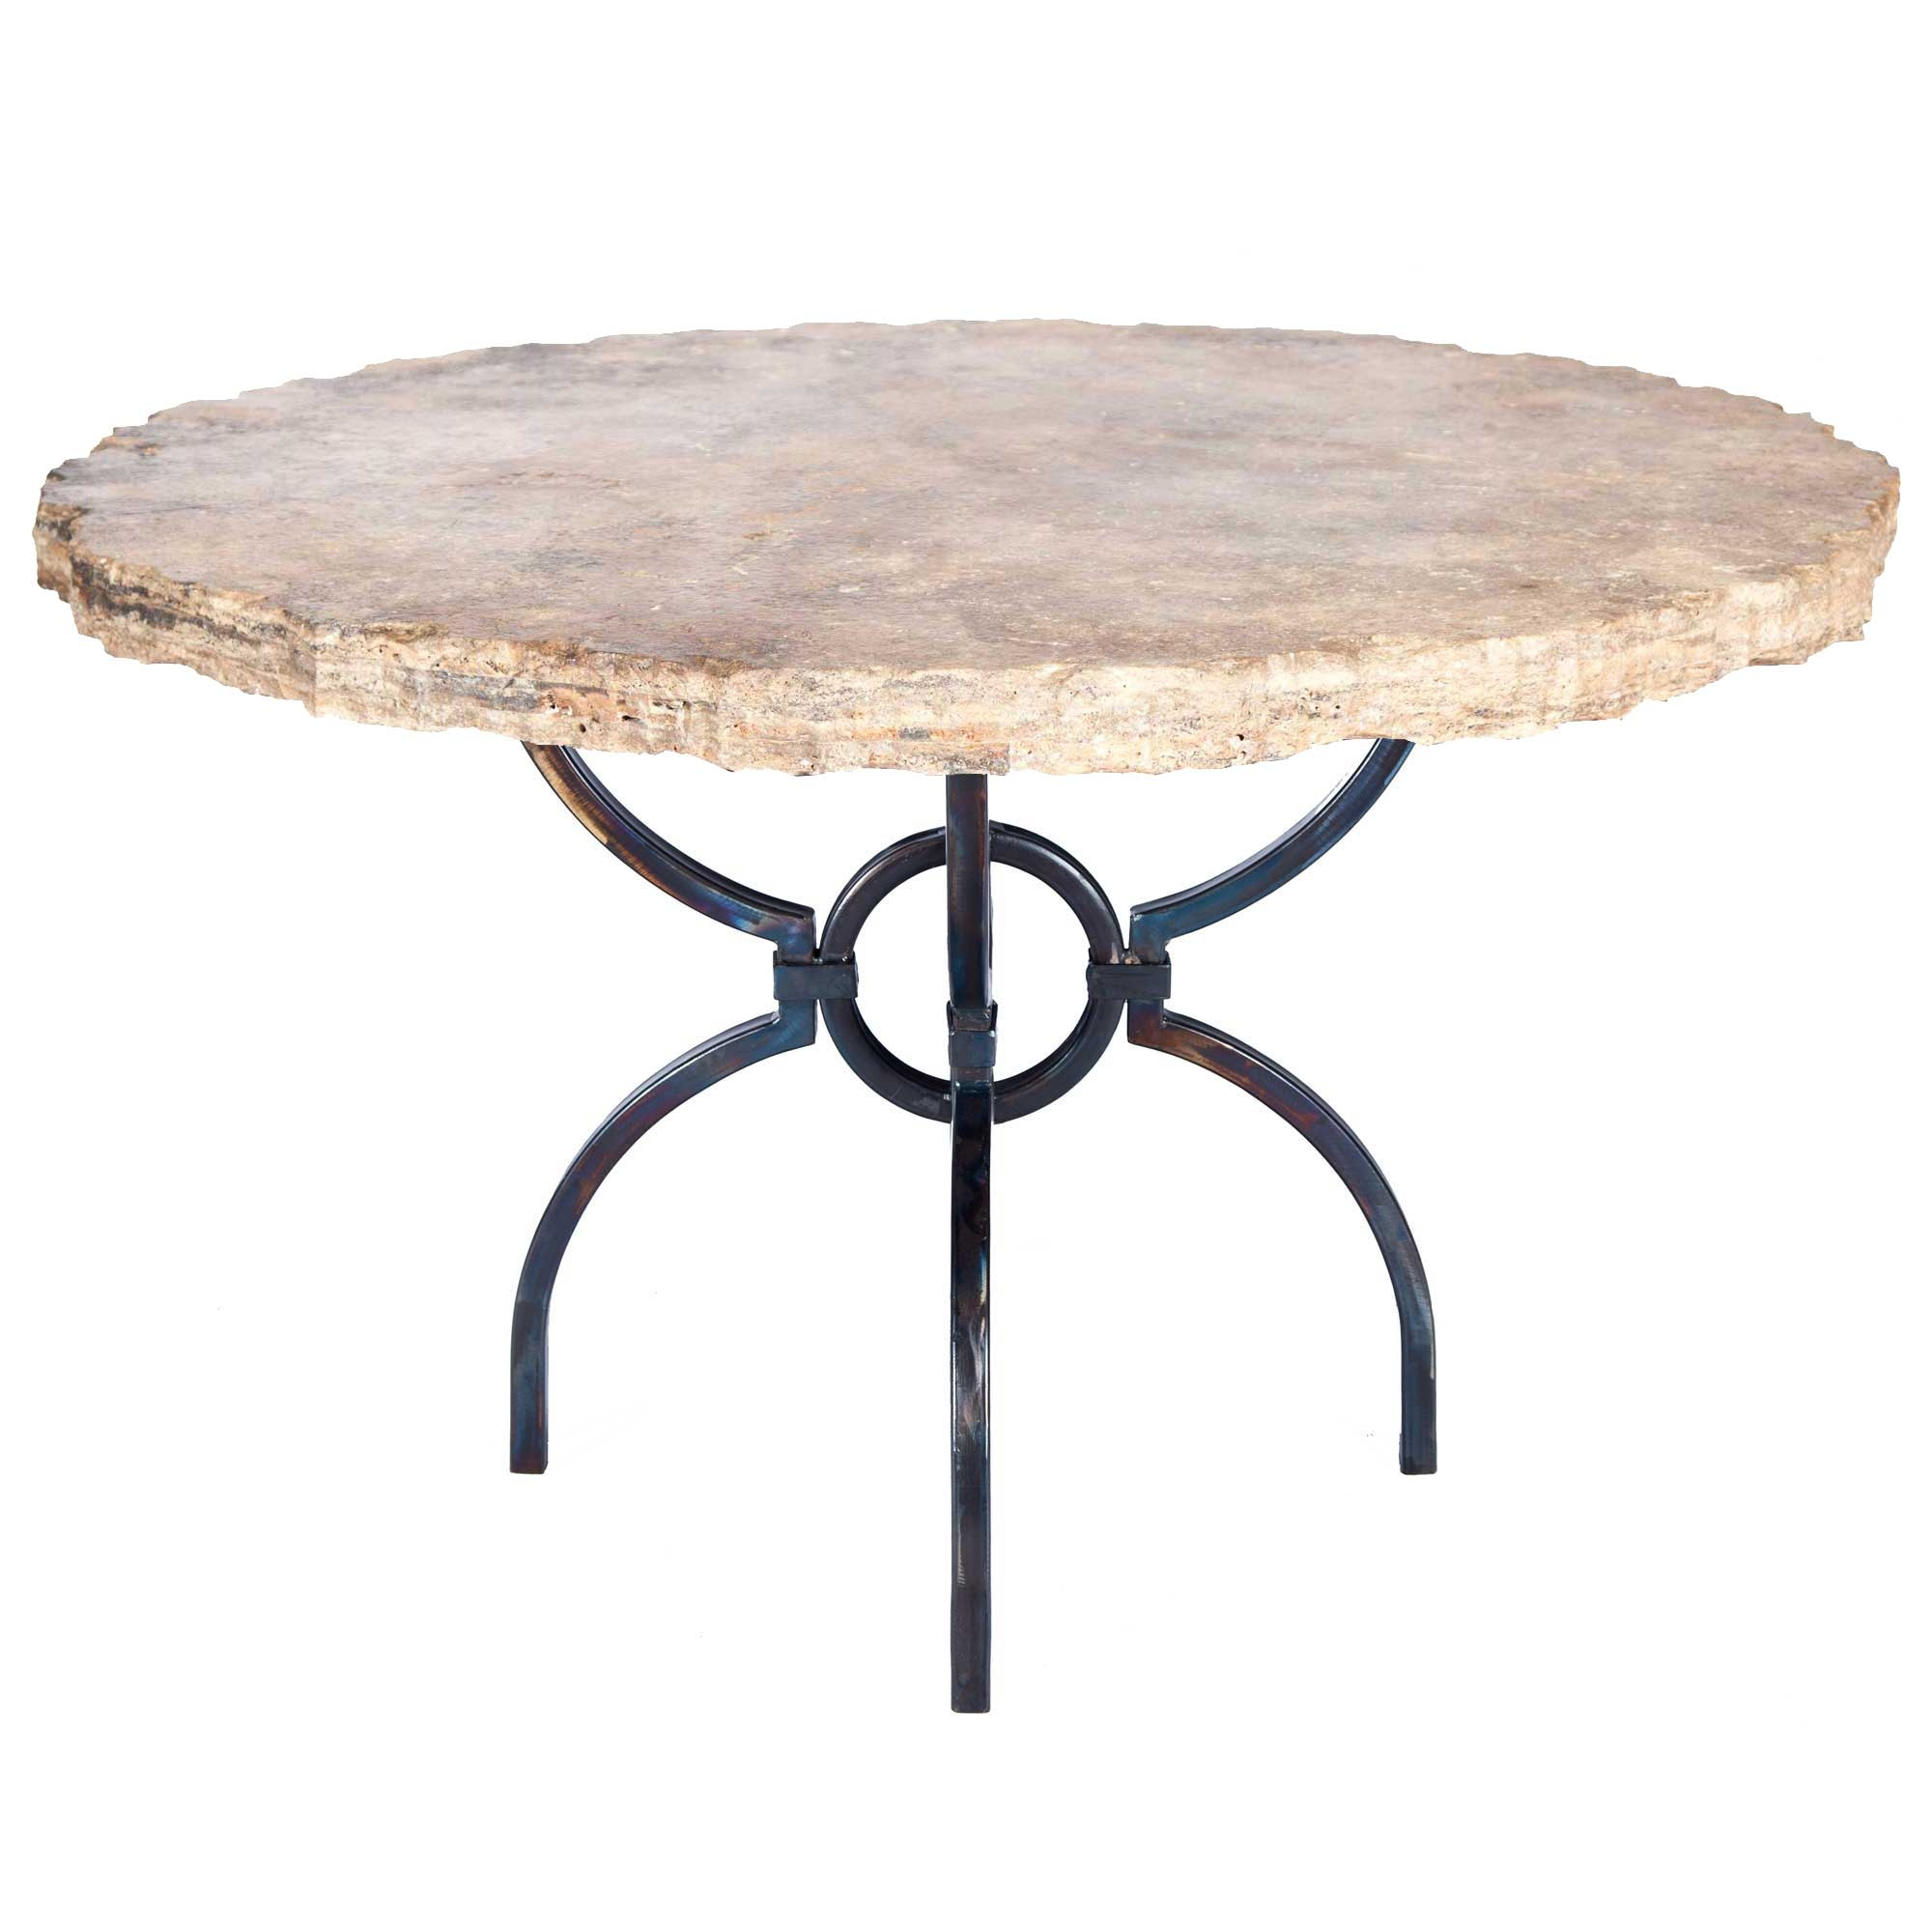 Logan iron dining table with 48 round marble top for Round stone top dining table